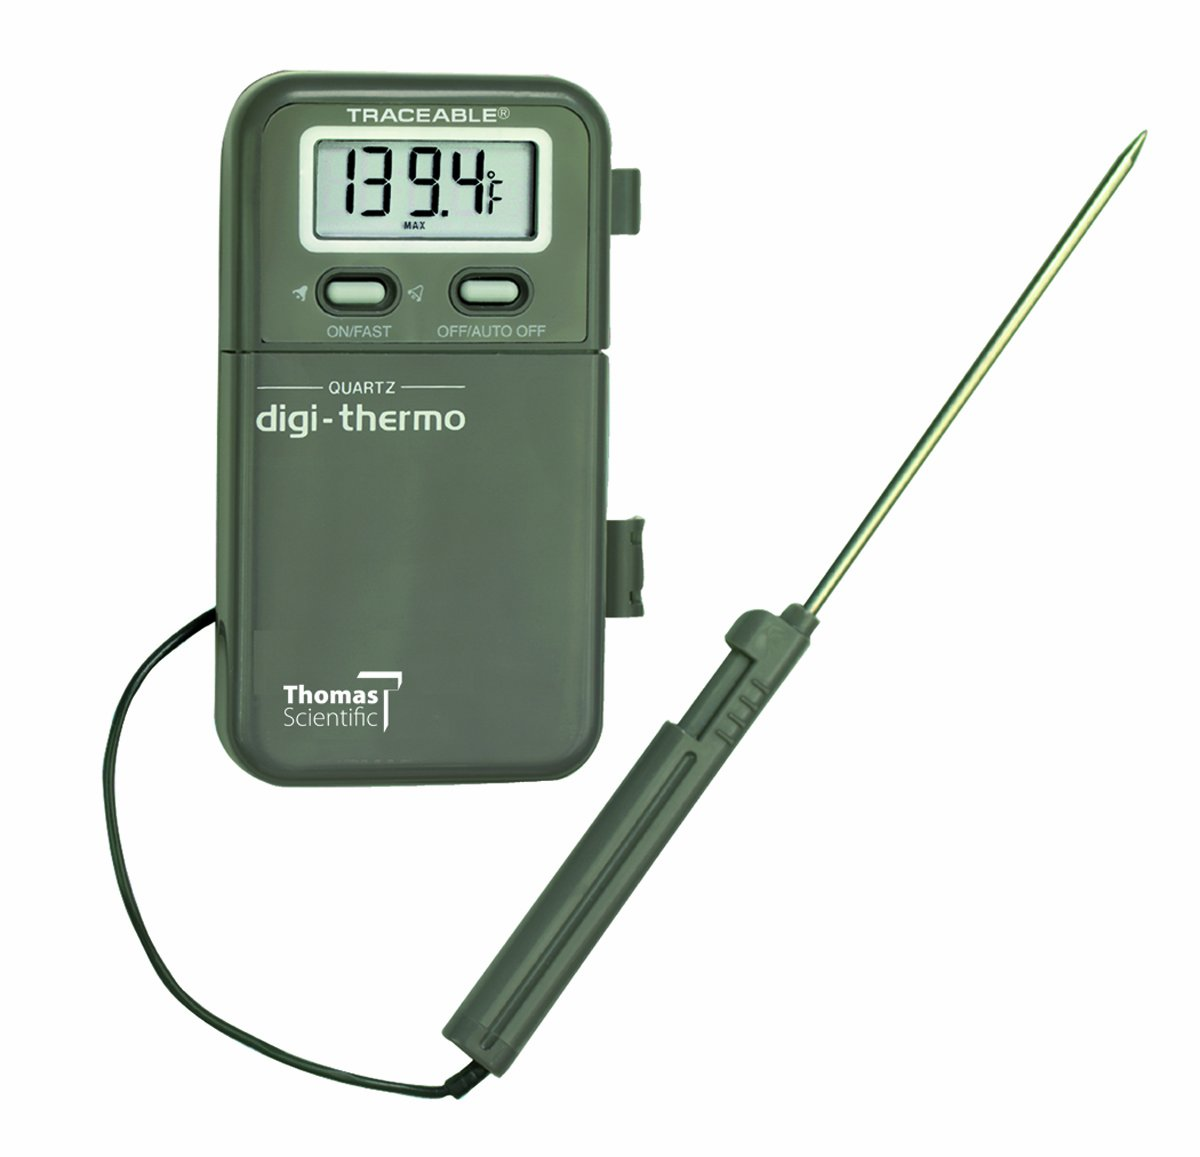 Thomas Digital Thermometer, with 1/2'' 4 Digit LCD Display, 7-1/4'' Probe Length, -58 to 500.8 degree F, -50 to 260 degree C